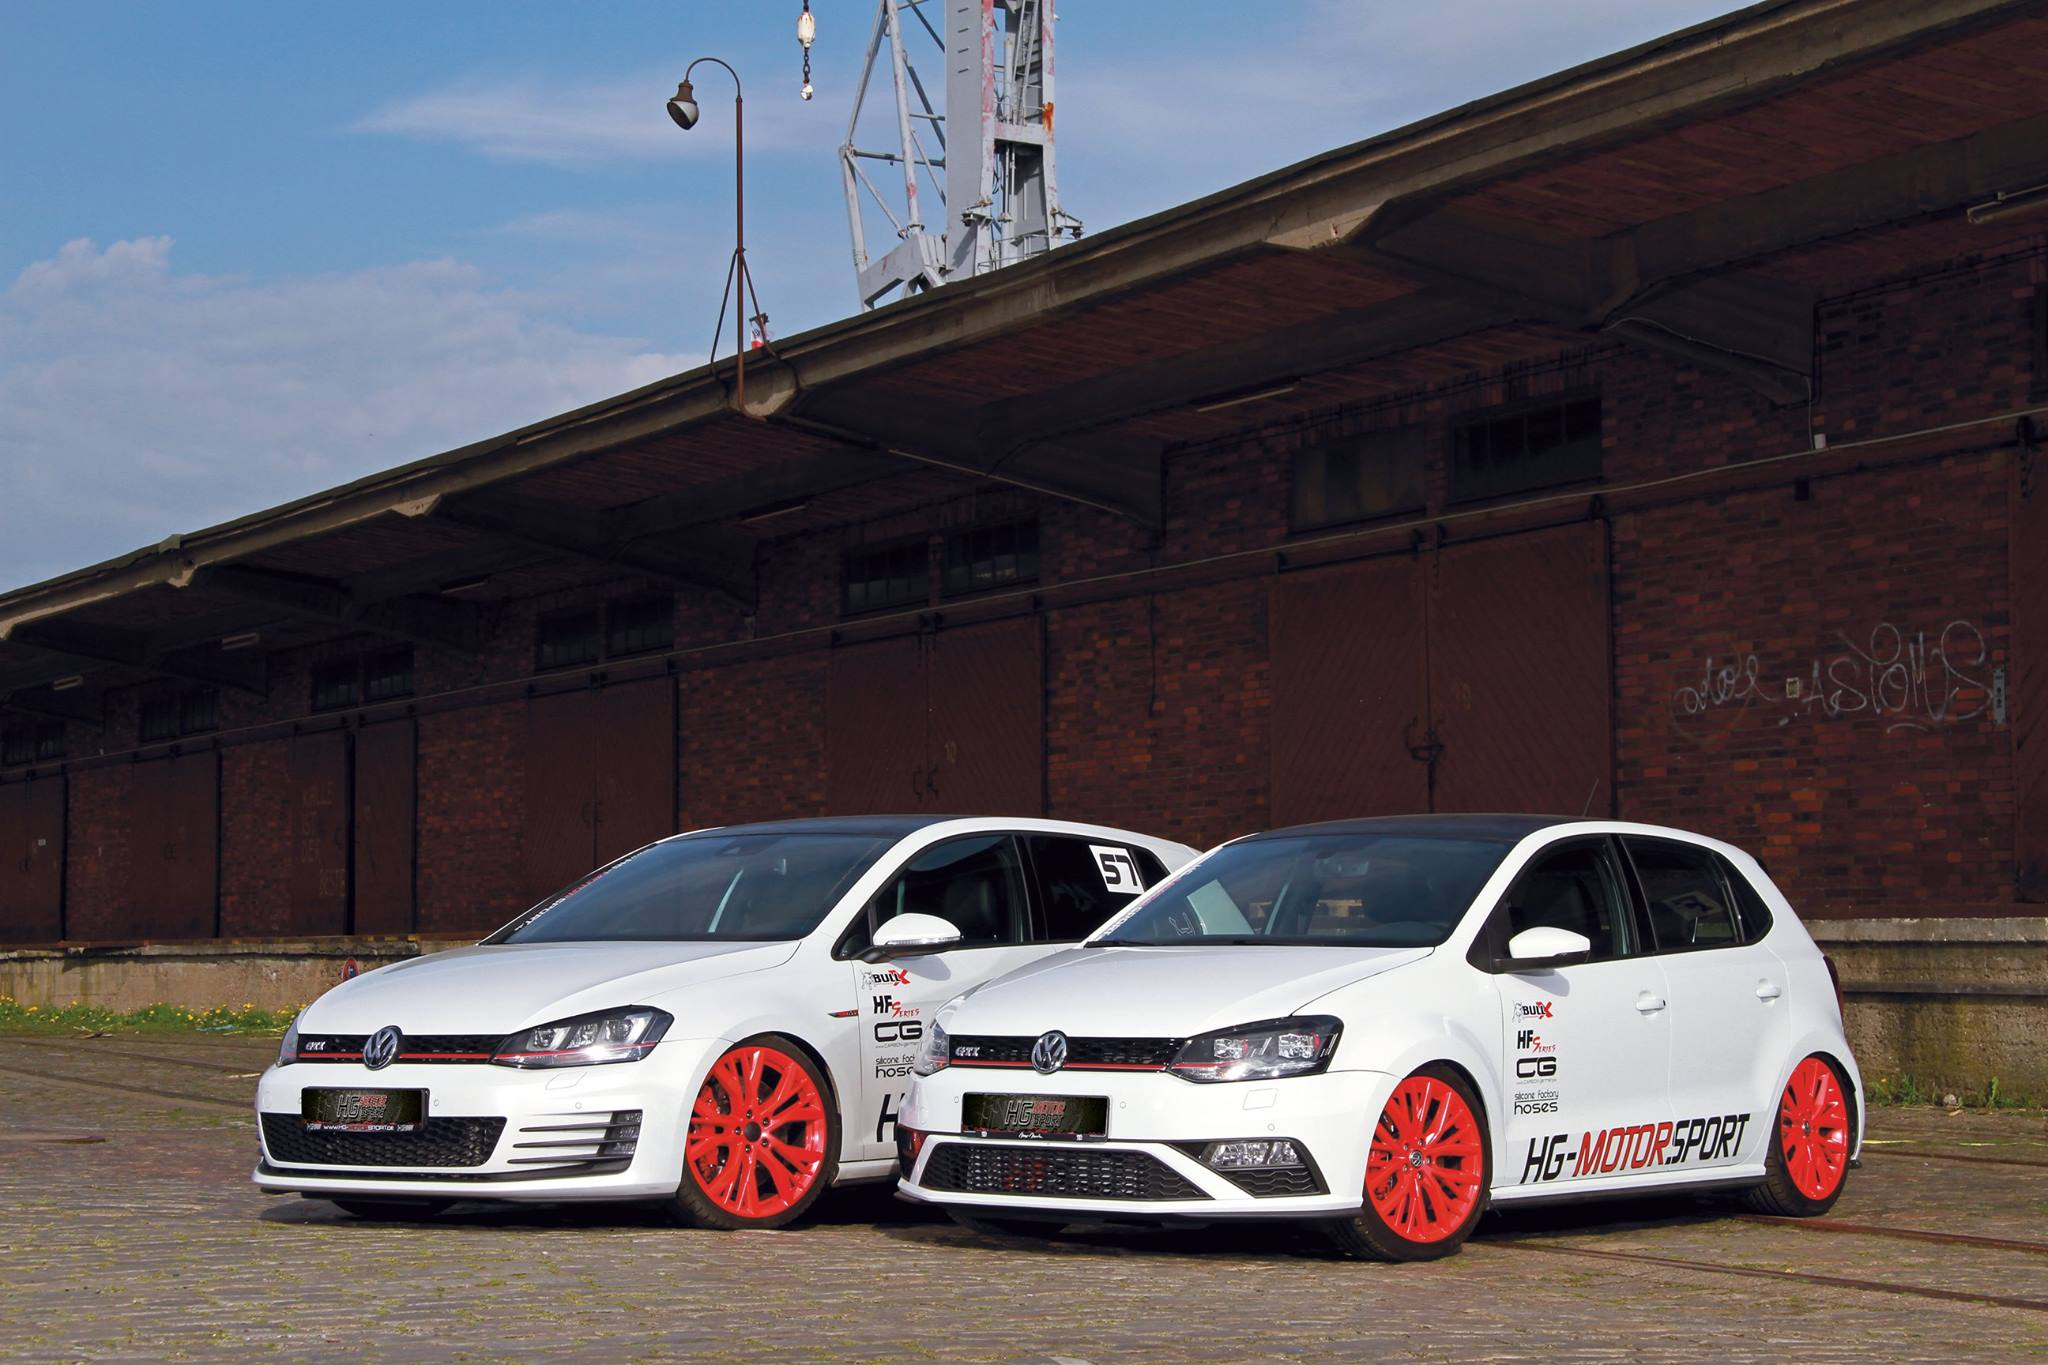 2015 volkswagen polo gti tuned to 260 hp by hg motorsport. Black Bedroom Furniture Sets. Home Design Ideas